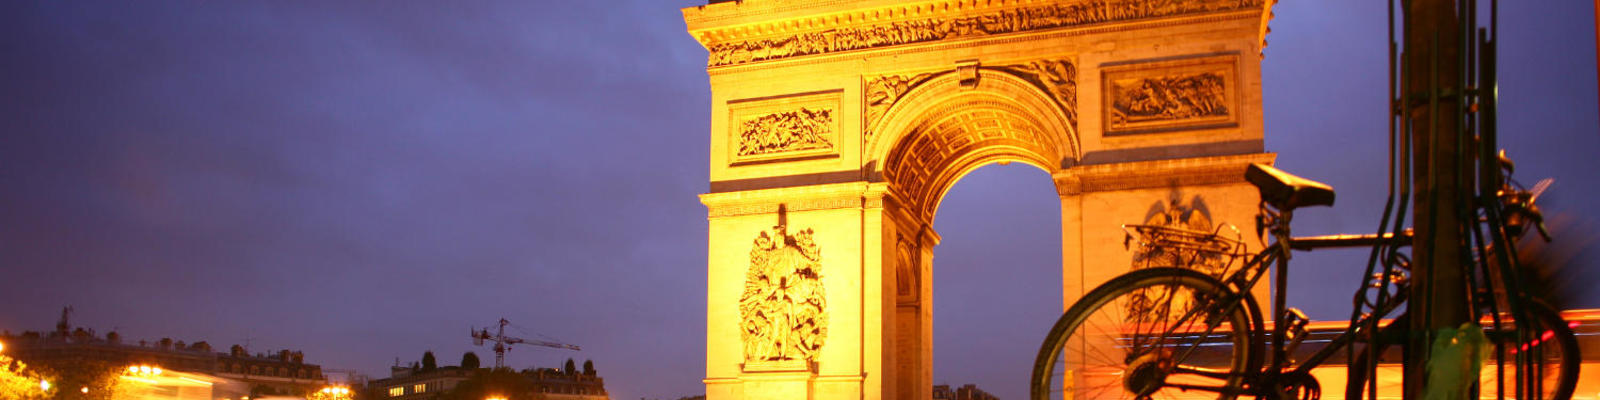 A bicycle leans against a lamp post in the glow from Paris's Arc de Triomphe, which is illuminated by night.